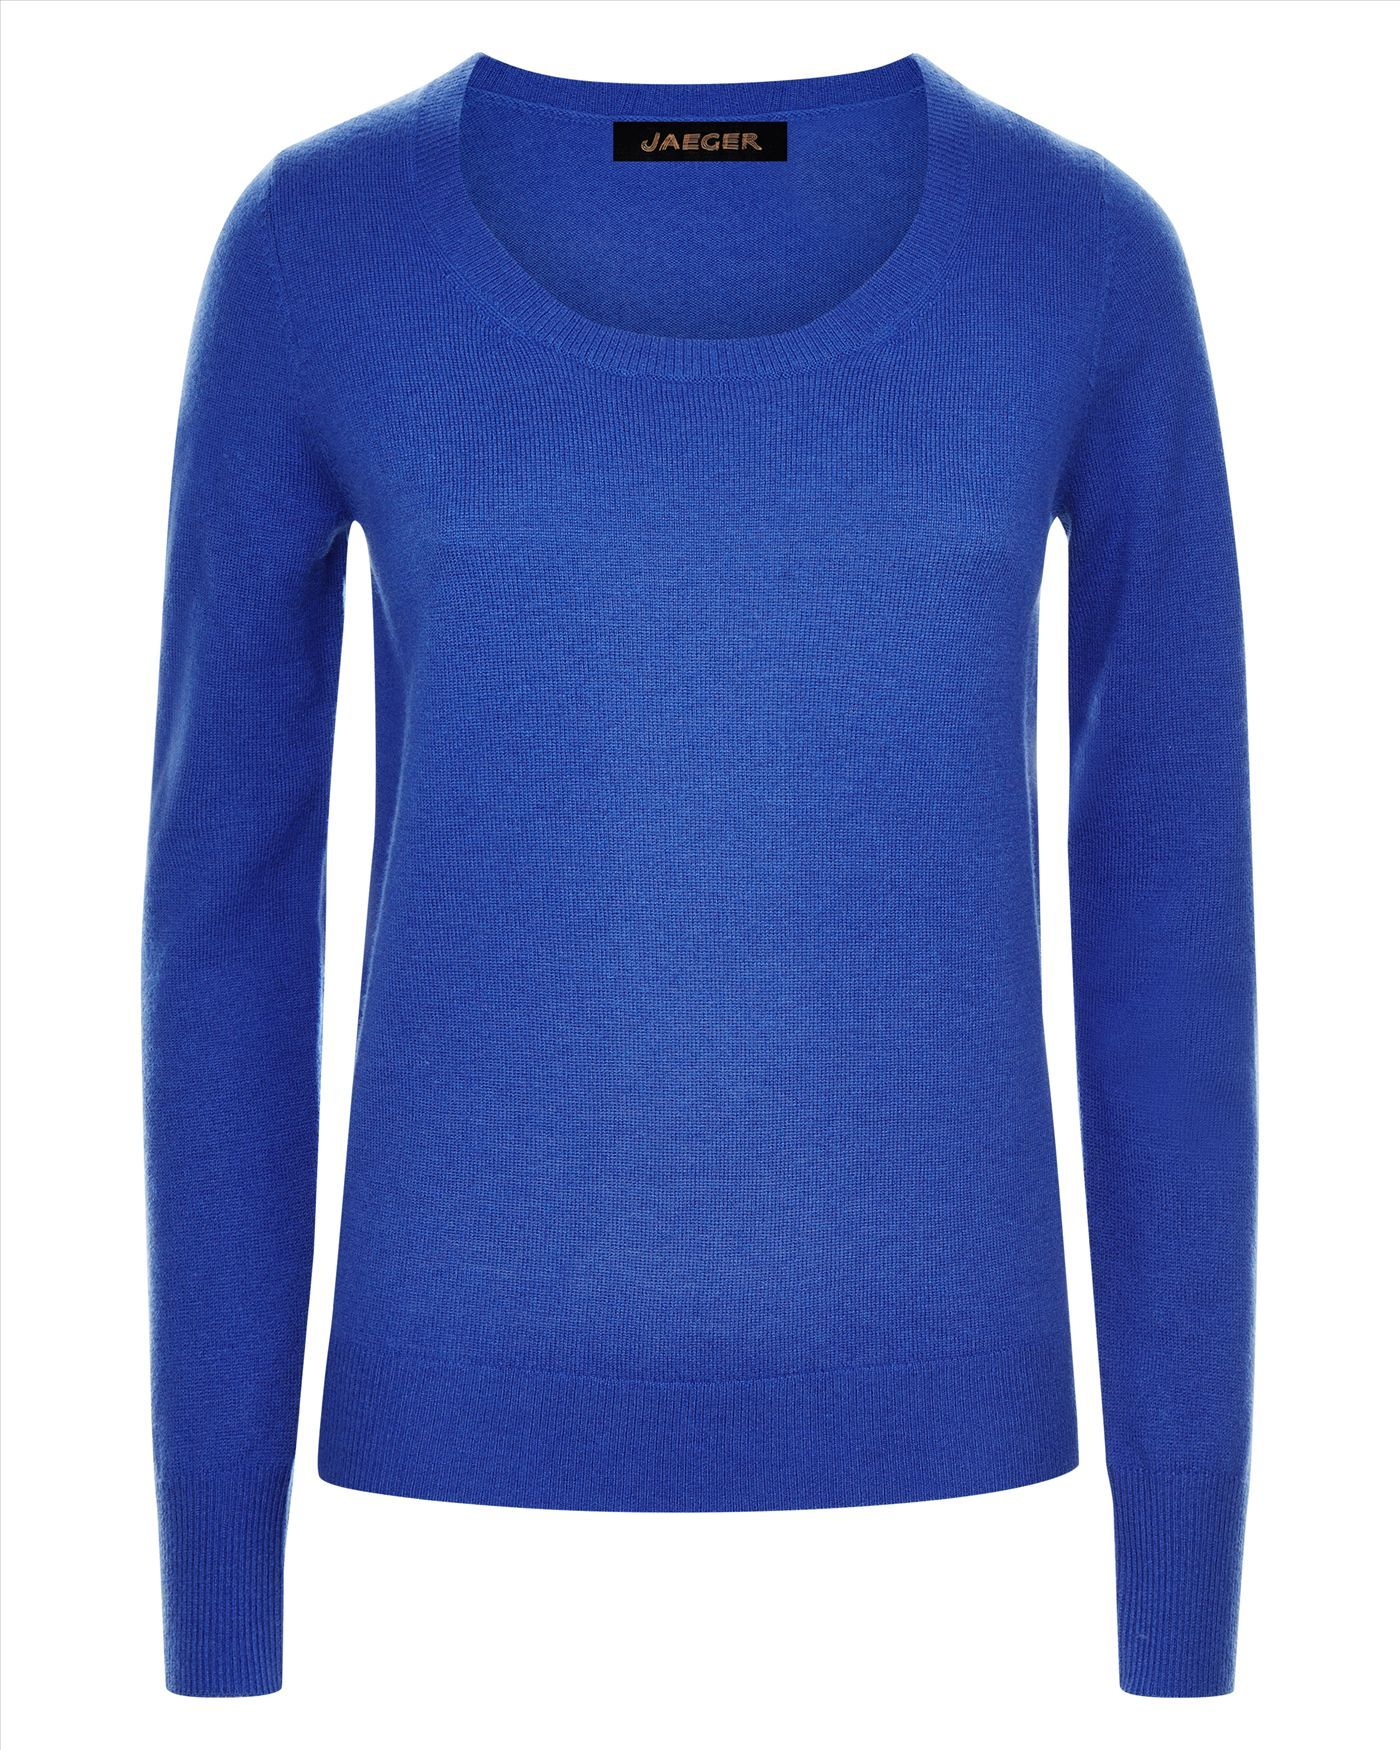 Wool Cashmere Sweater,Bright Blue,original | Jewel Winter - House ...